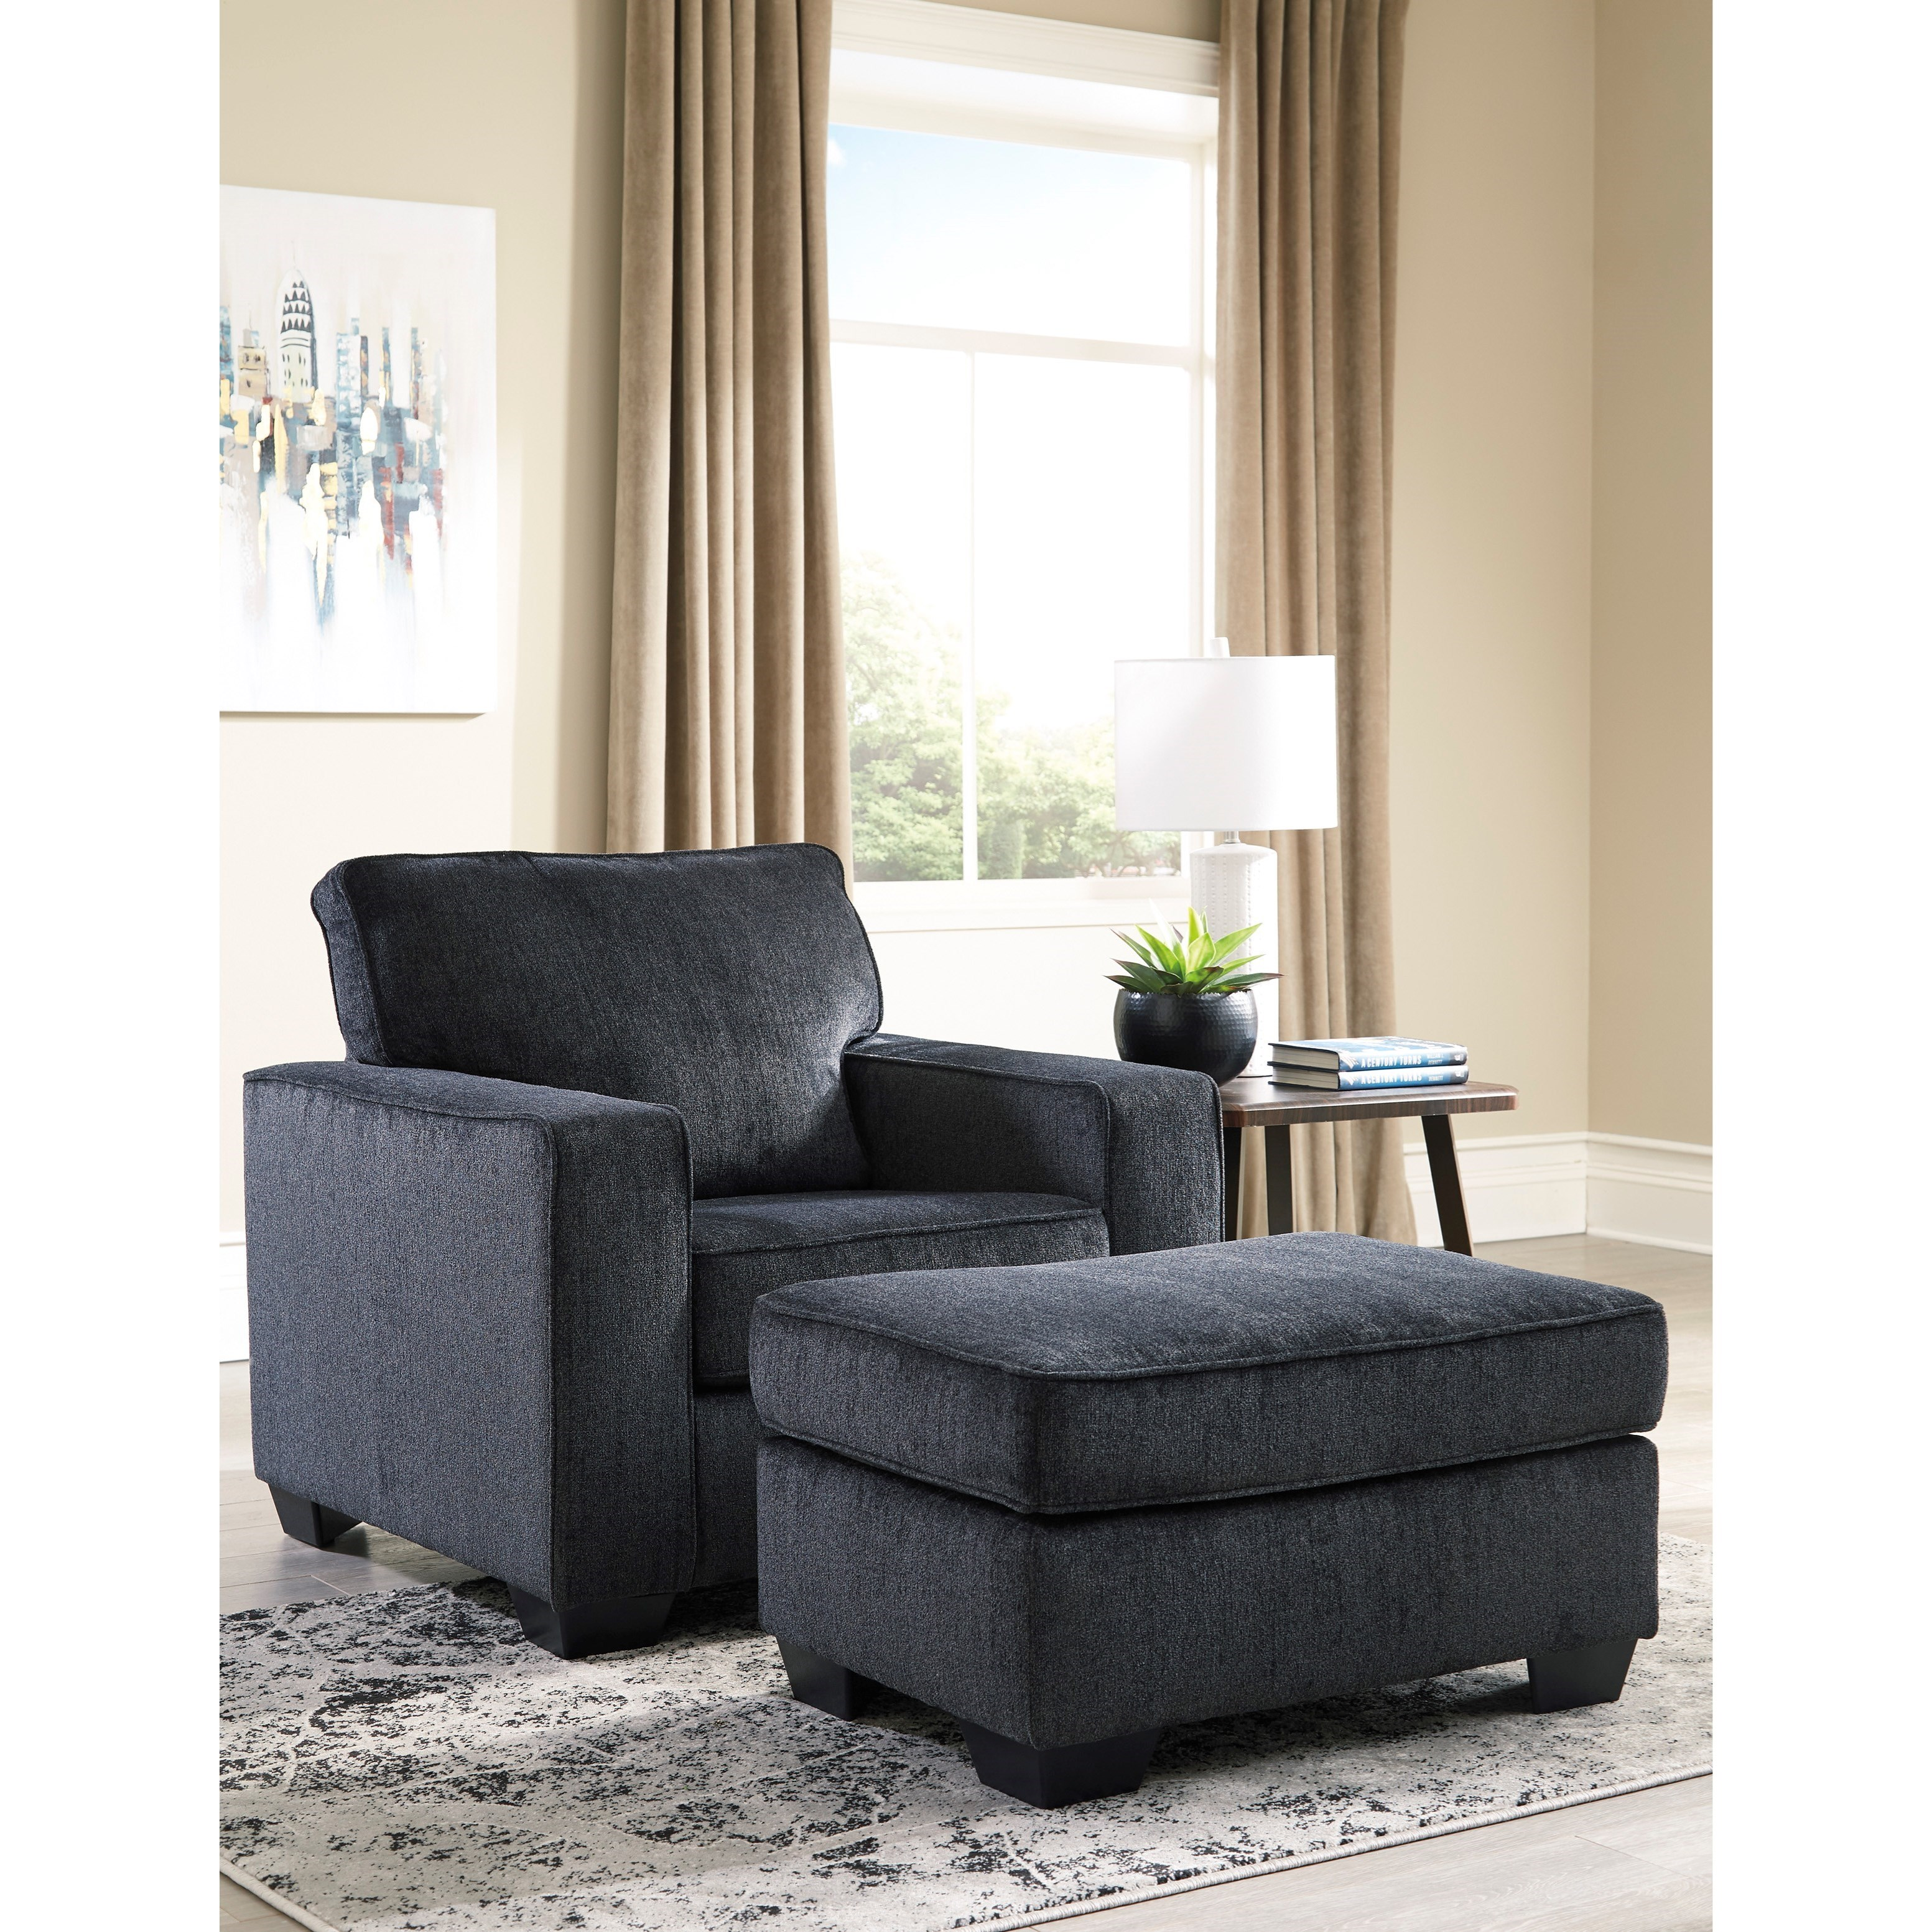 Altari Chair and Ottoman by Signature Design by Ashley at Home Furnishings Direct